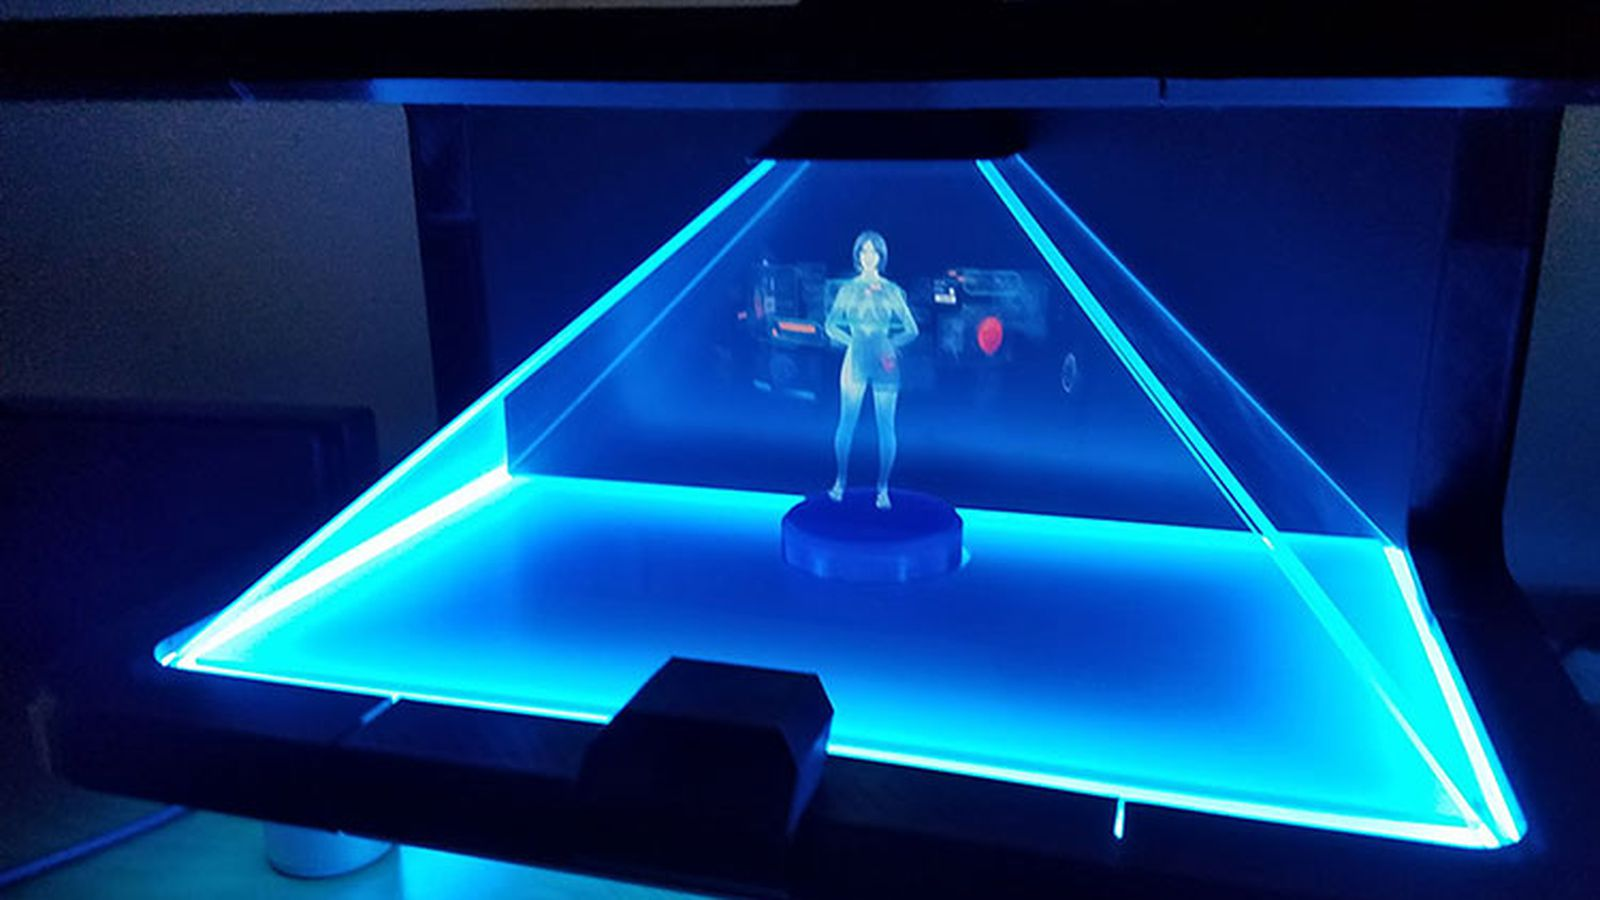 Watch a working concept of a holographic Cortana assistant